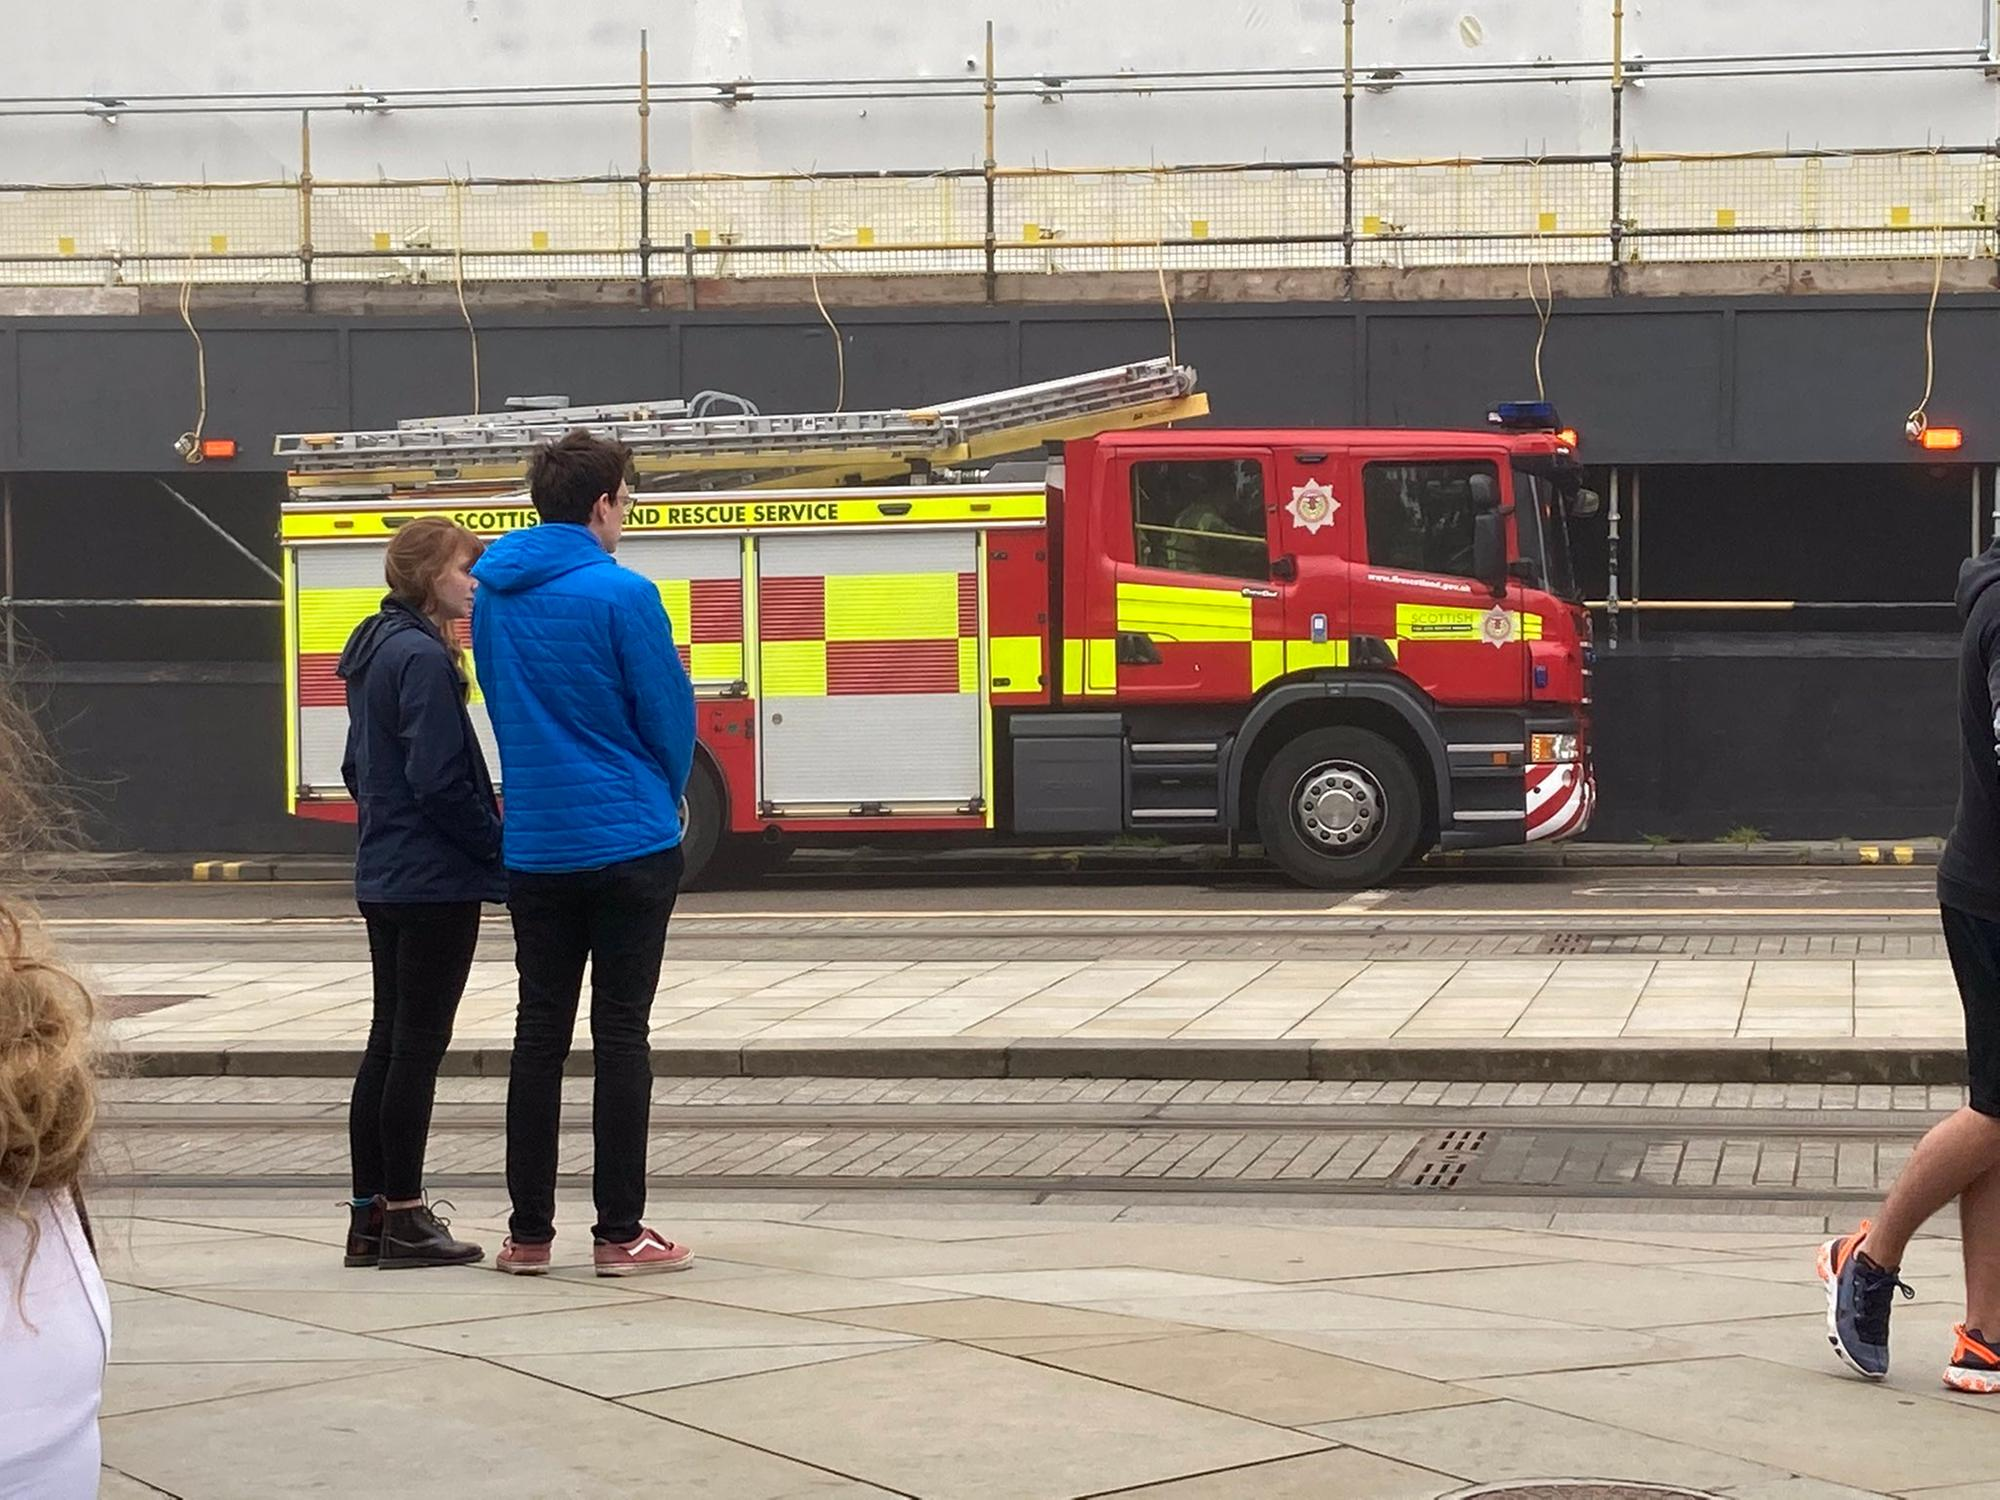 Watch fire crews descend on Edinburgh hotel as guests and staff evacuated